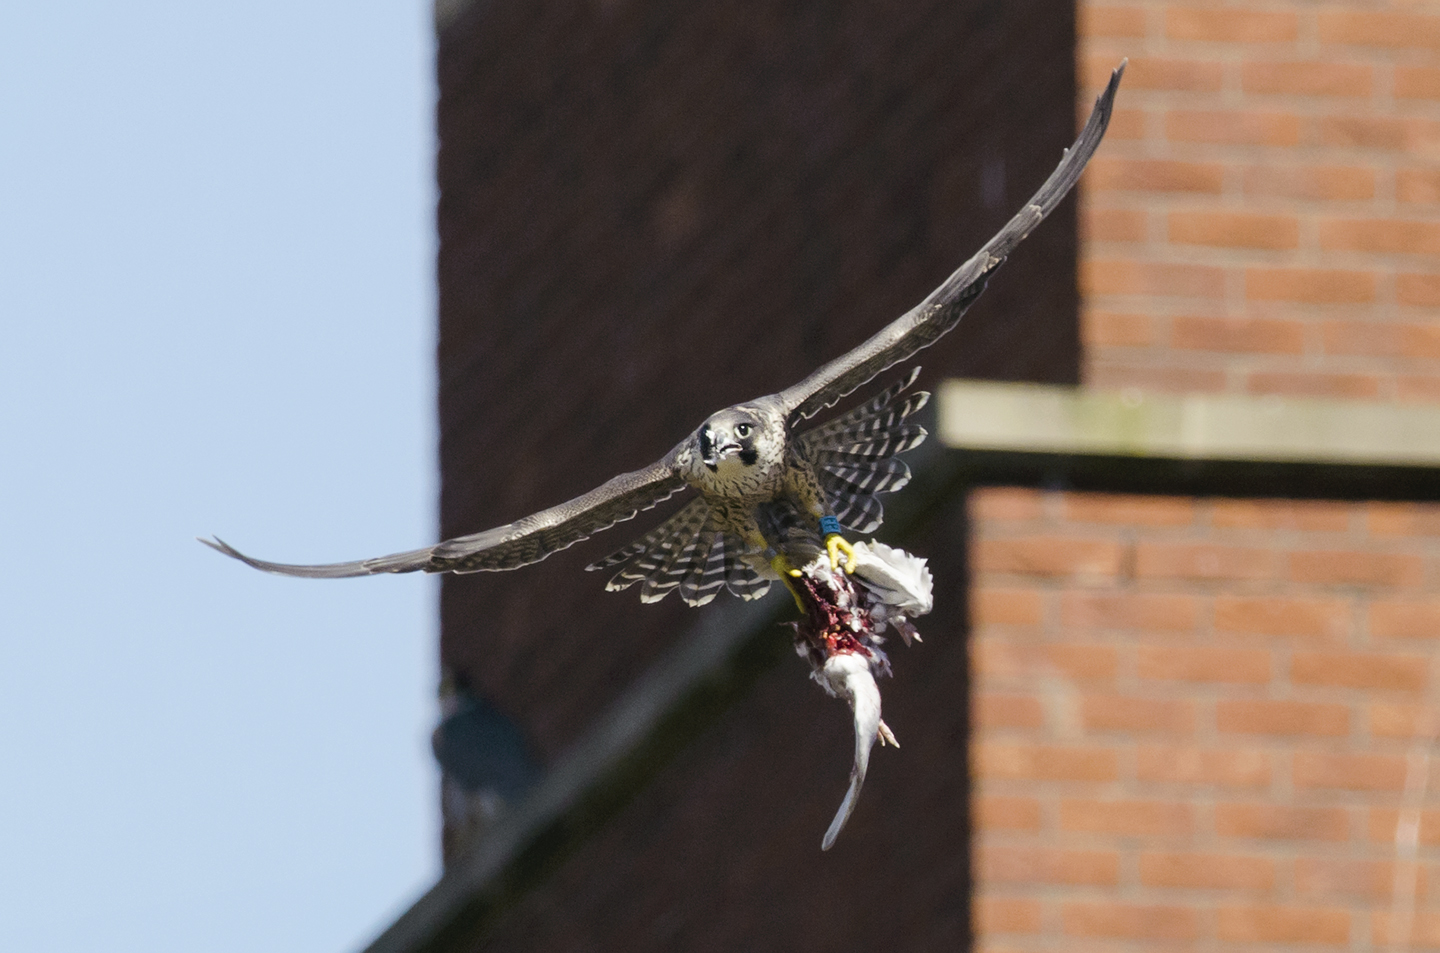 Young falcons make their first flights and catch their first pigeons in the city - to them it's home and they know no different